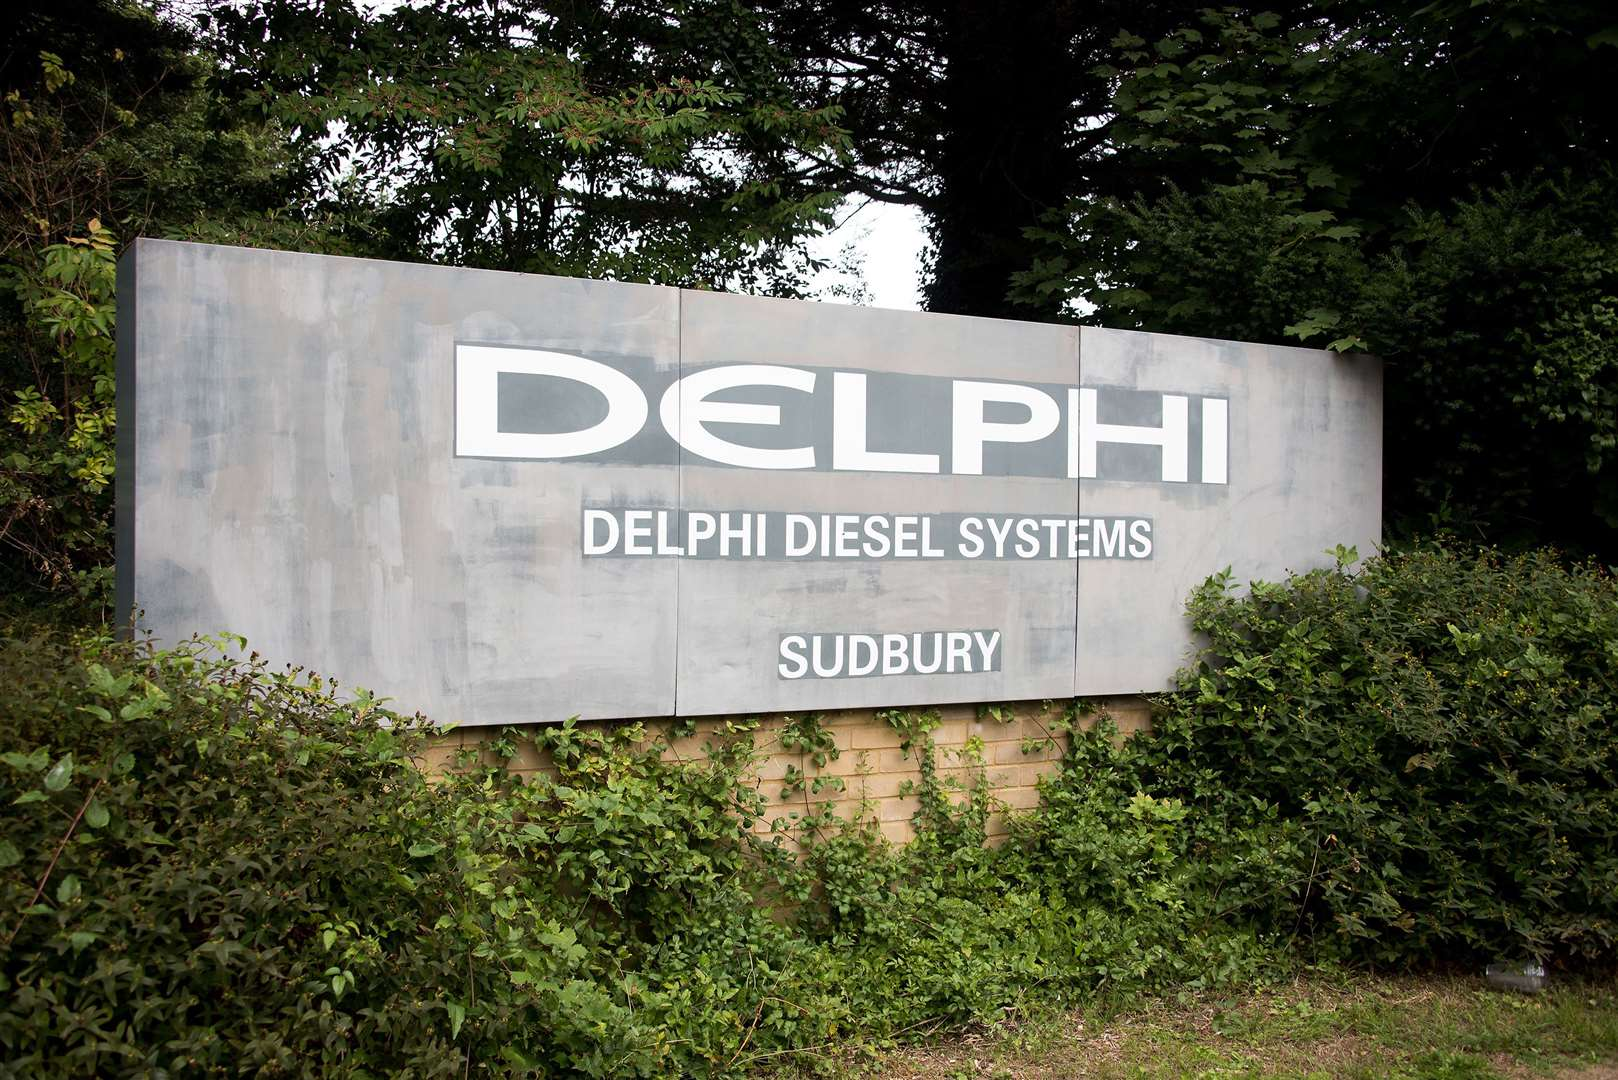 Delphi Diesel Systems Ltd, Newton Road, Sudbury Picture Mark Westley. (15484011)